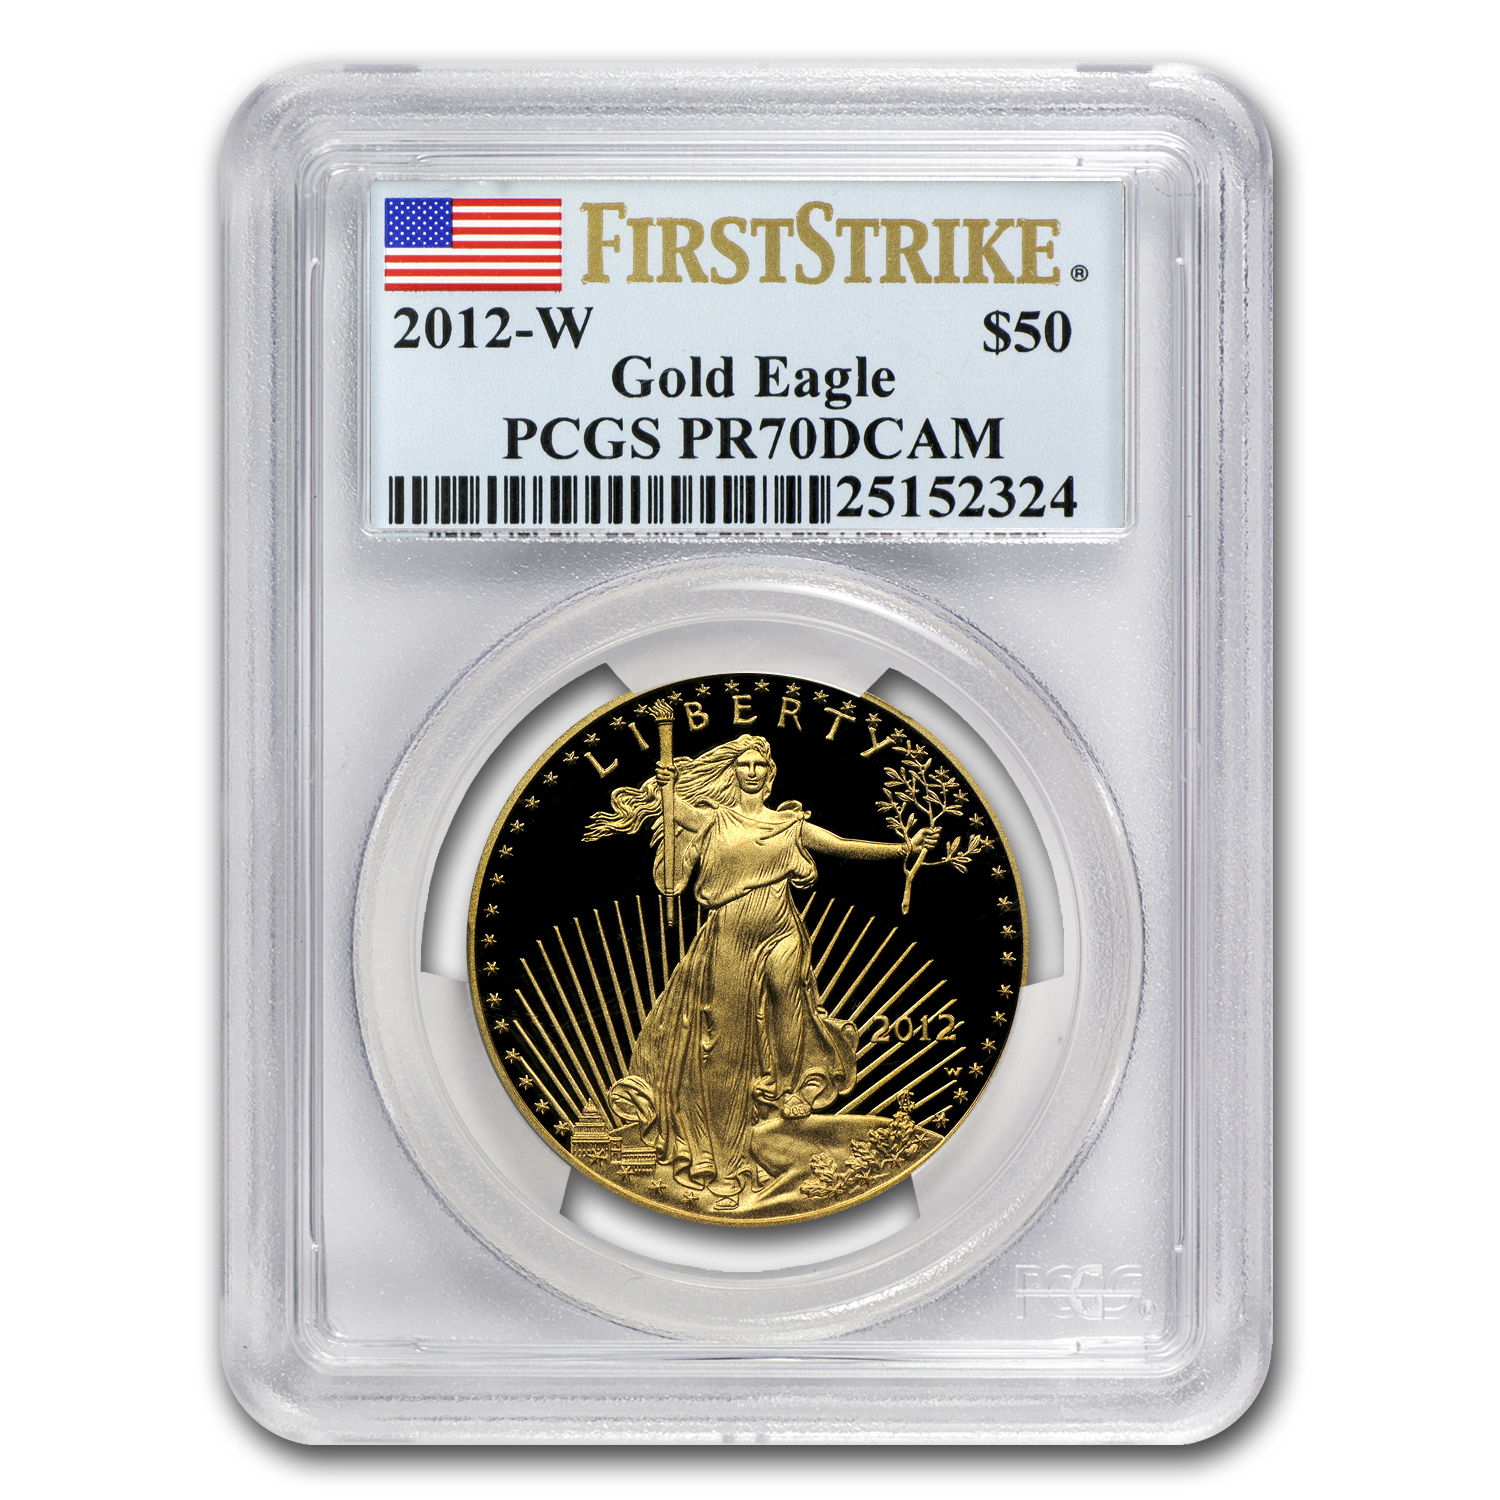 2012-W 1 oz Proof Gold American Eagle PR-70 PCGS (FS)